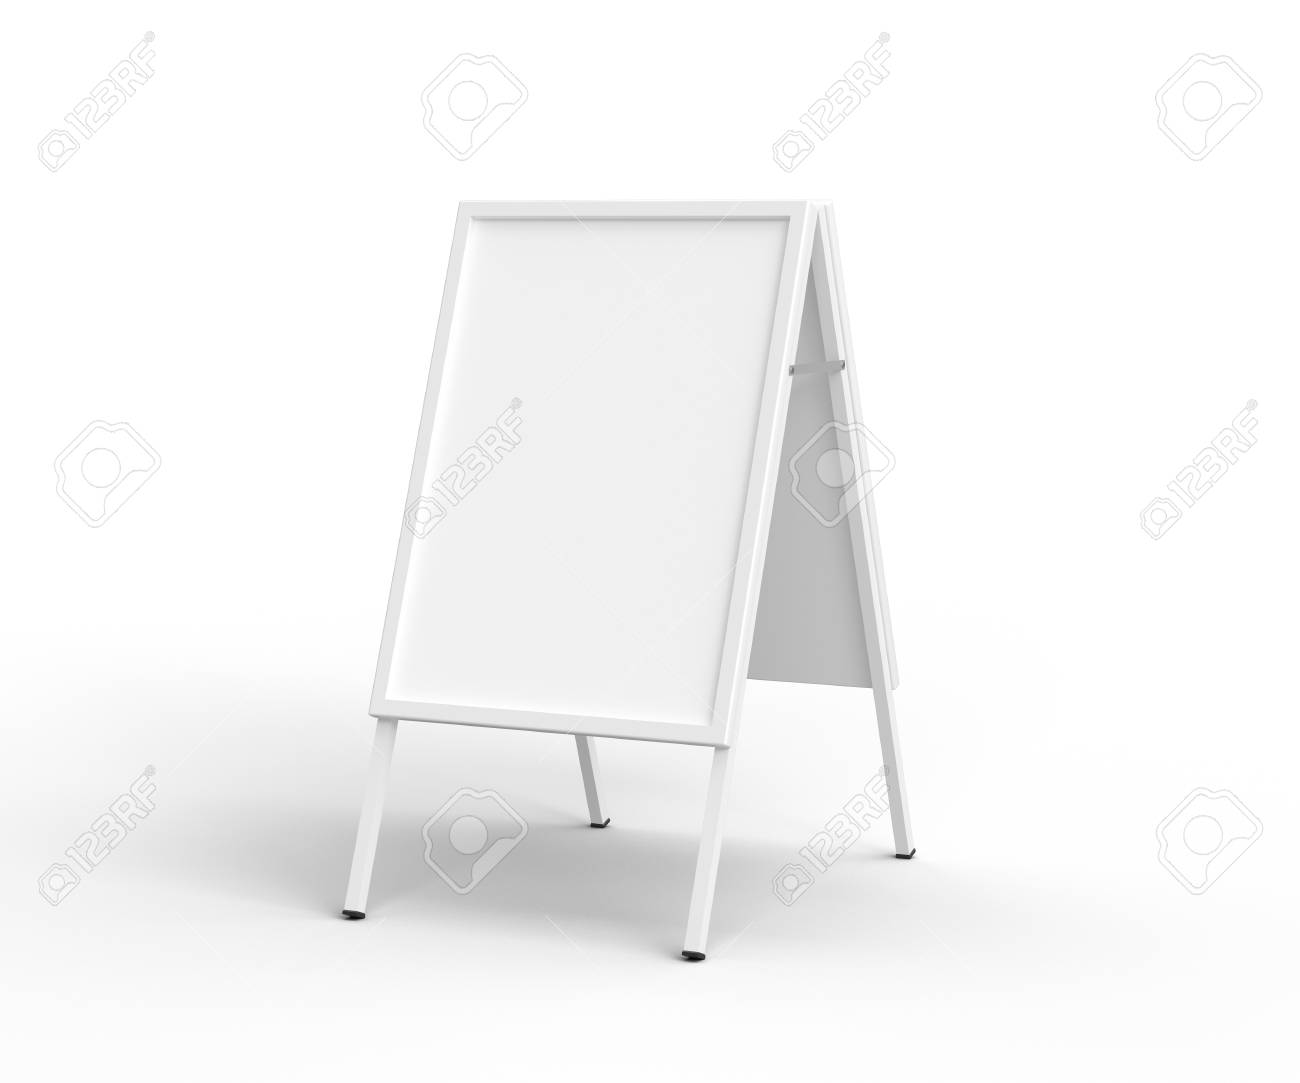 sandwich board on a white background Stock Photo - 19090264